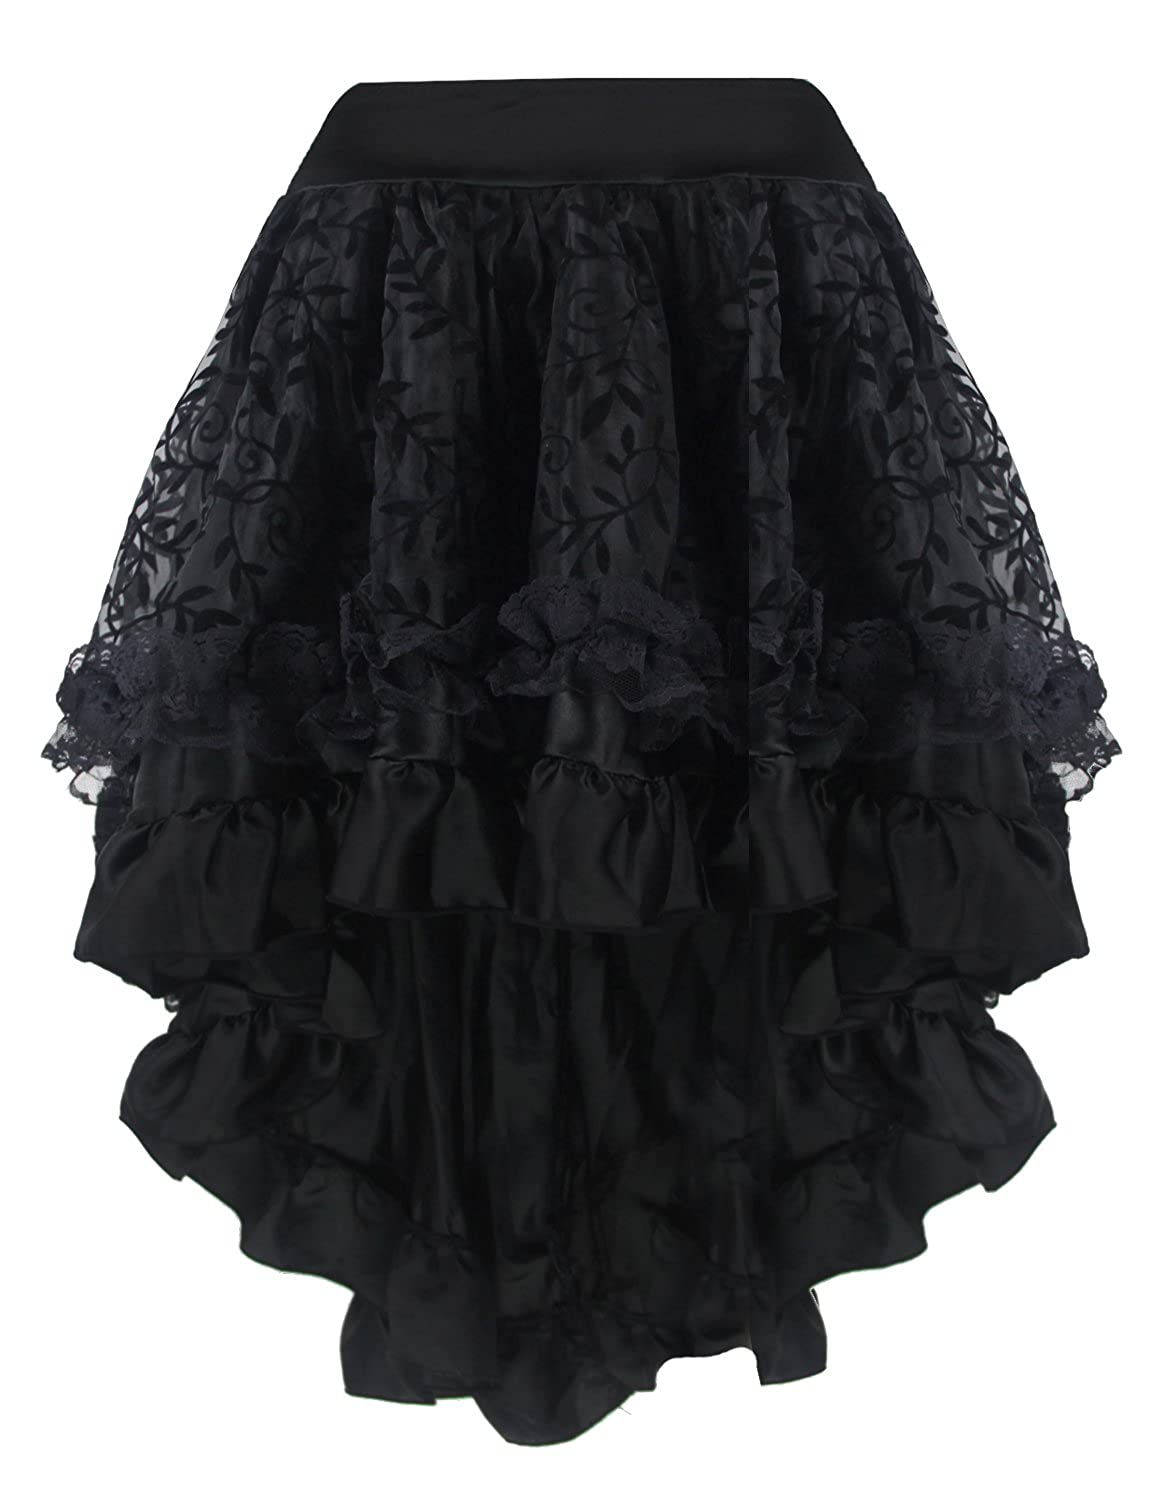 Steampunk Plus Size Clothing Burvogue Womens Gothic Steampunk Costume Vintage Multi Layered Chiffon Skirt $29.99 AT vintagedancer.com